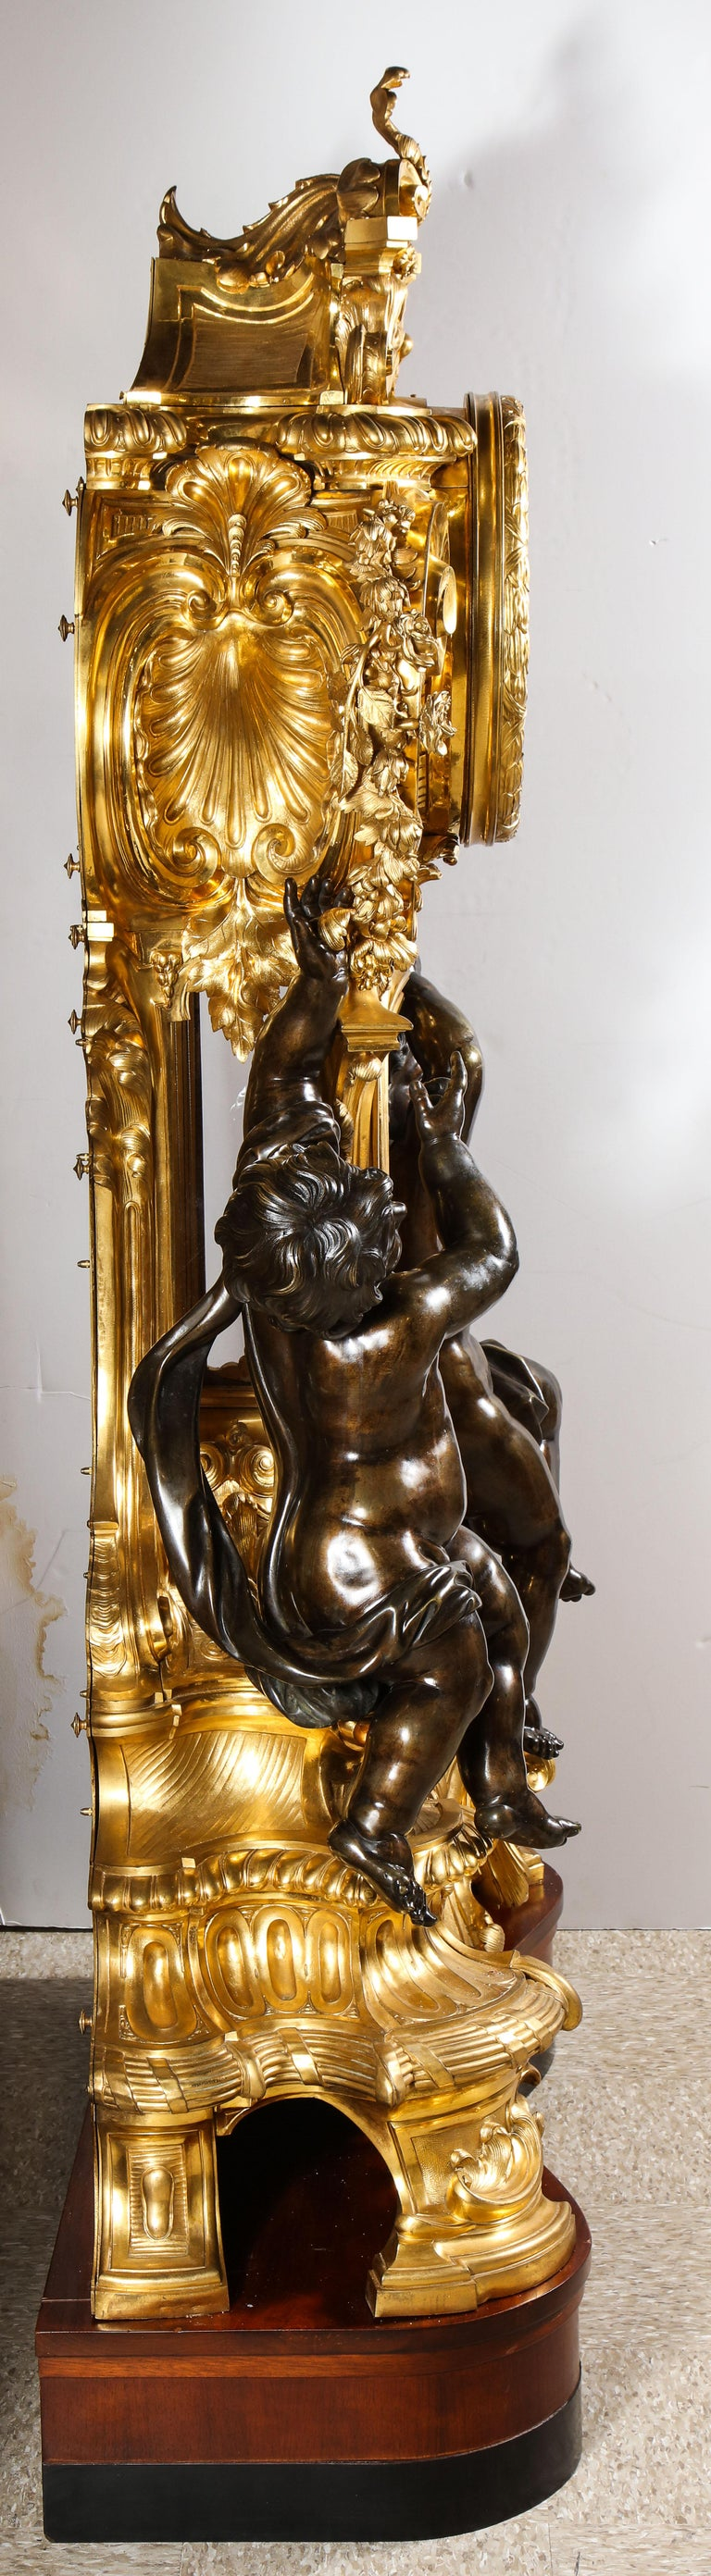 Palatial & Rare Napoleon III French Ormolu and Patinated Bronze Clock, Detouche For Sale 5